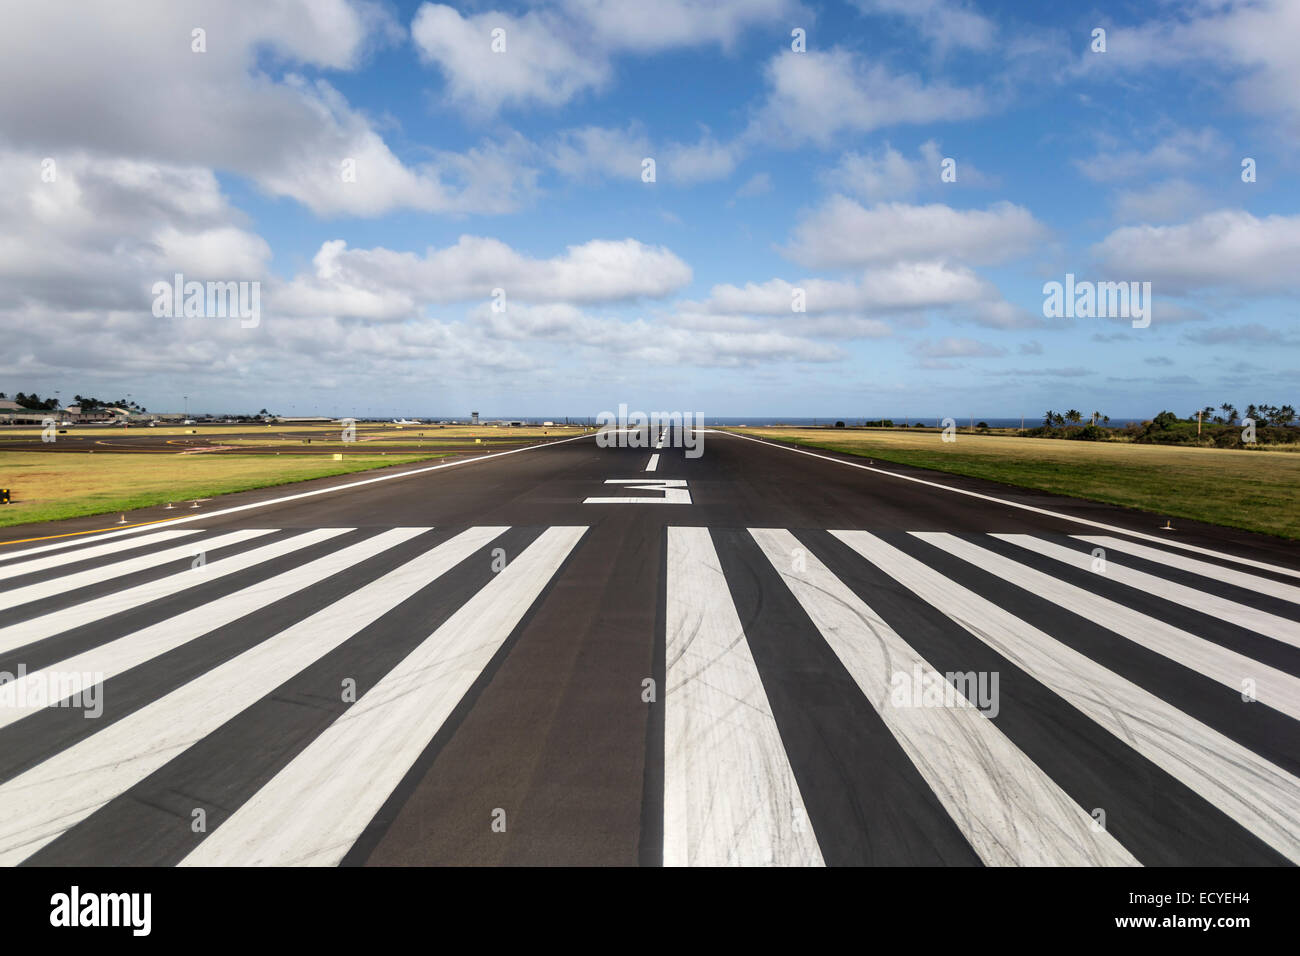 Tropical runway at a regional island airport in Hawaii. - Stock Image